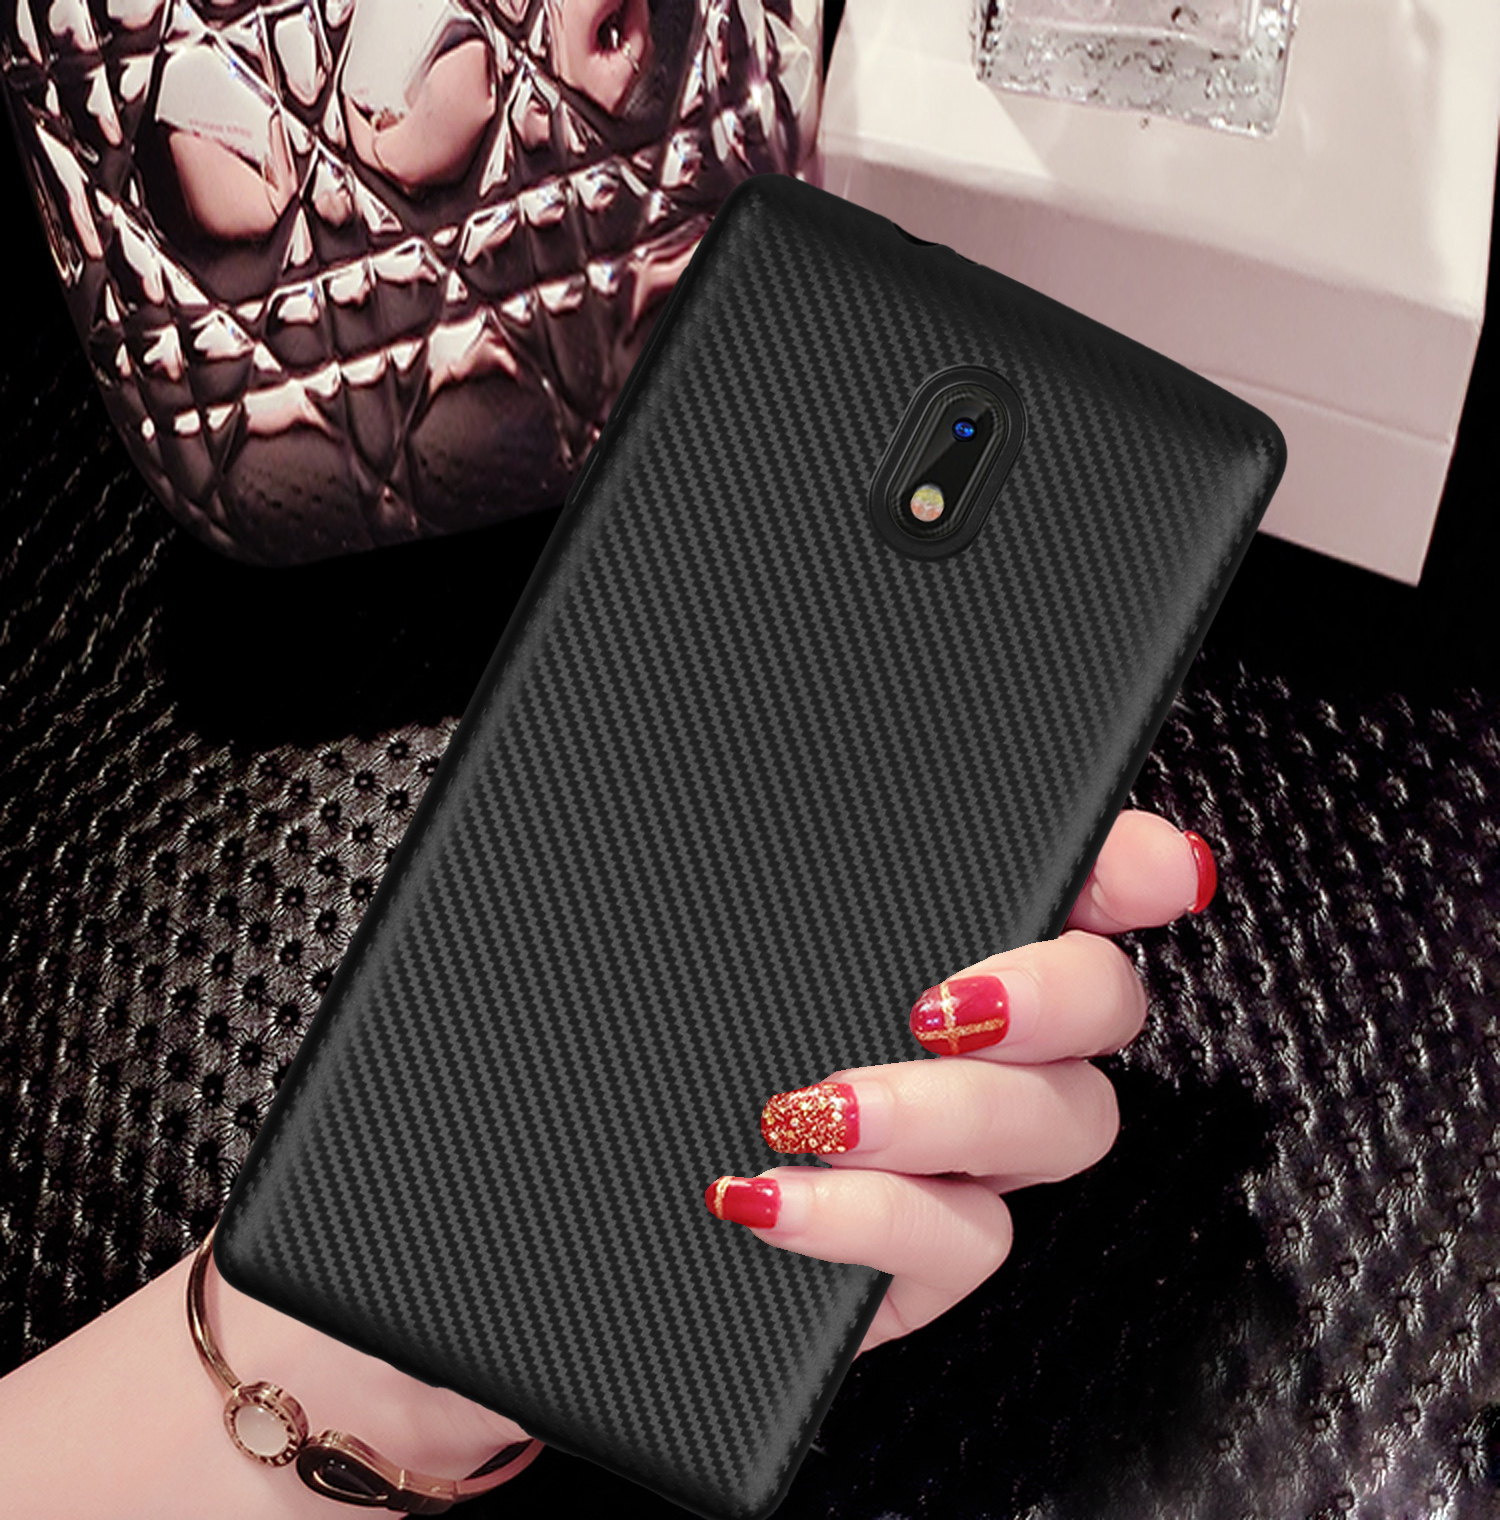 HATOLY For <font><b>Fundas</b></font> <font><b>Nokia</b></font> 3 Case for <font><b>nokia</b></font> <font><b>lumia</b></font> 3 Ultra Ultra-thin Soft TPU Carbon Fiber Back Cover for <font><b>Nokia</b></font> 3 TA-<font><b>1020</b></font> TA-1032 image